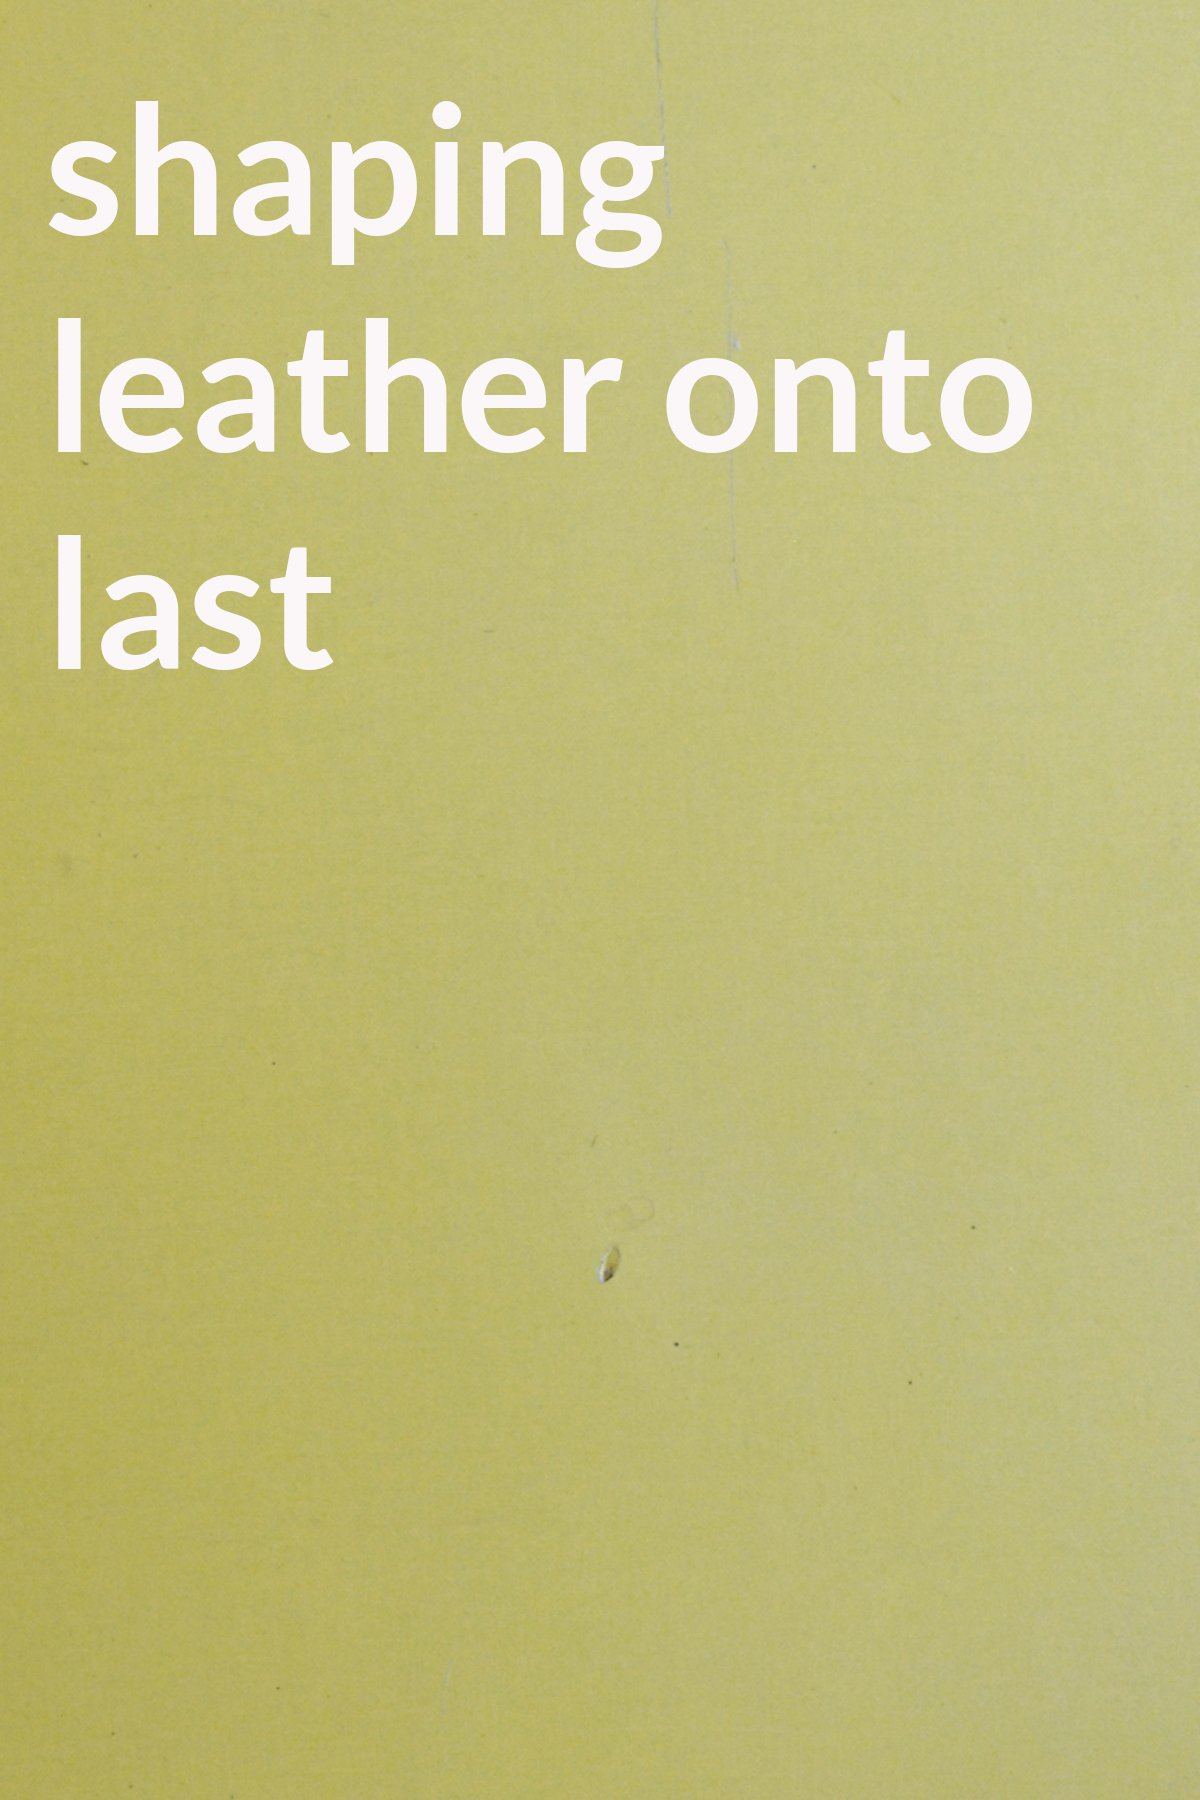 shaping leather onto last